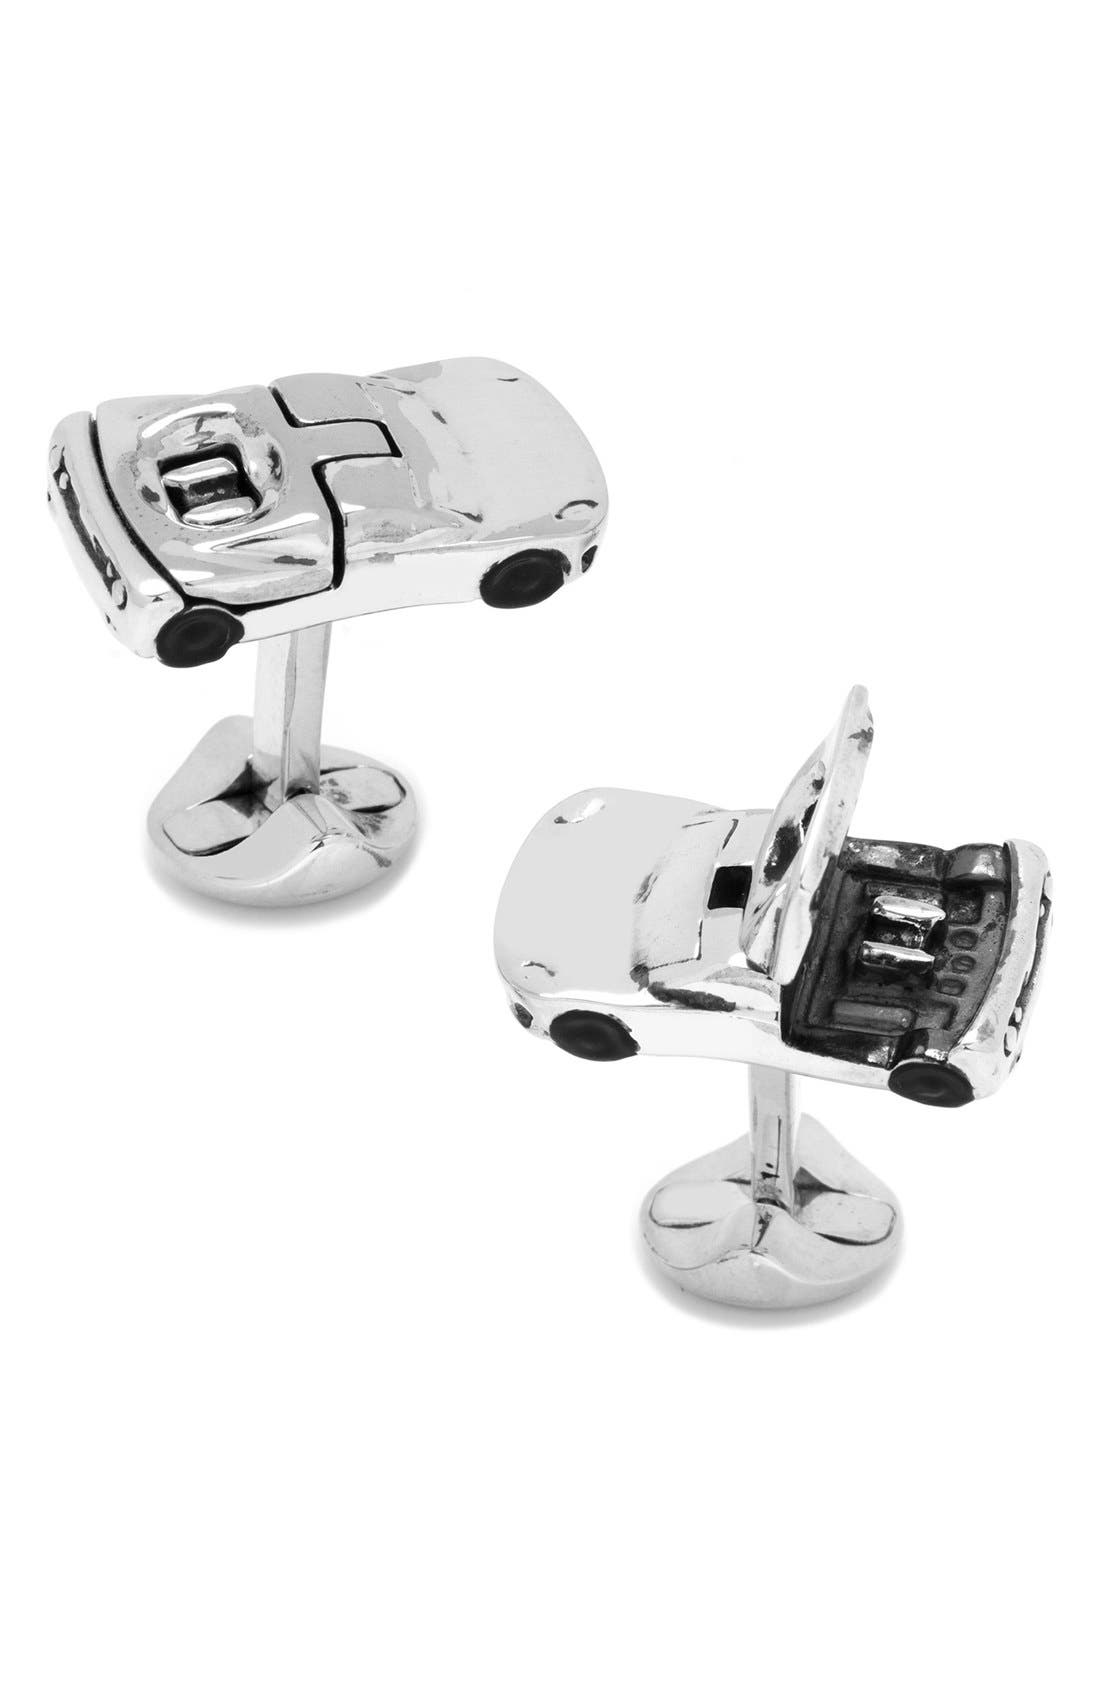 Main Image - Ox and Bull Trading Co. Sports Car Cuff Links